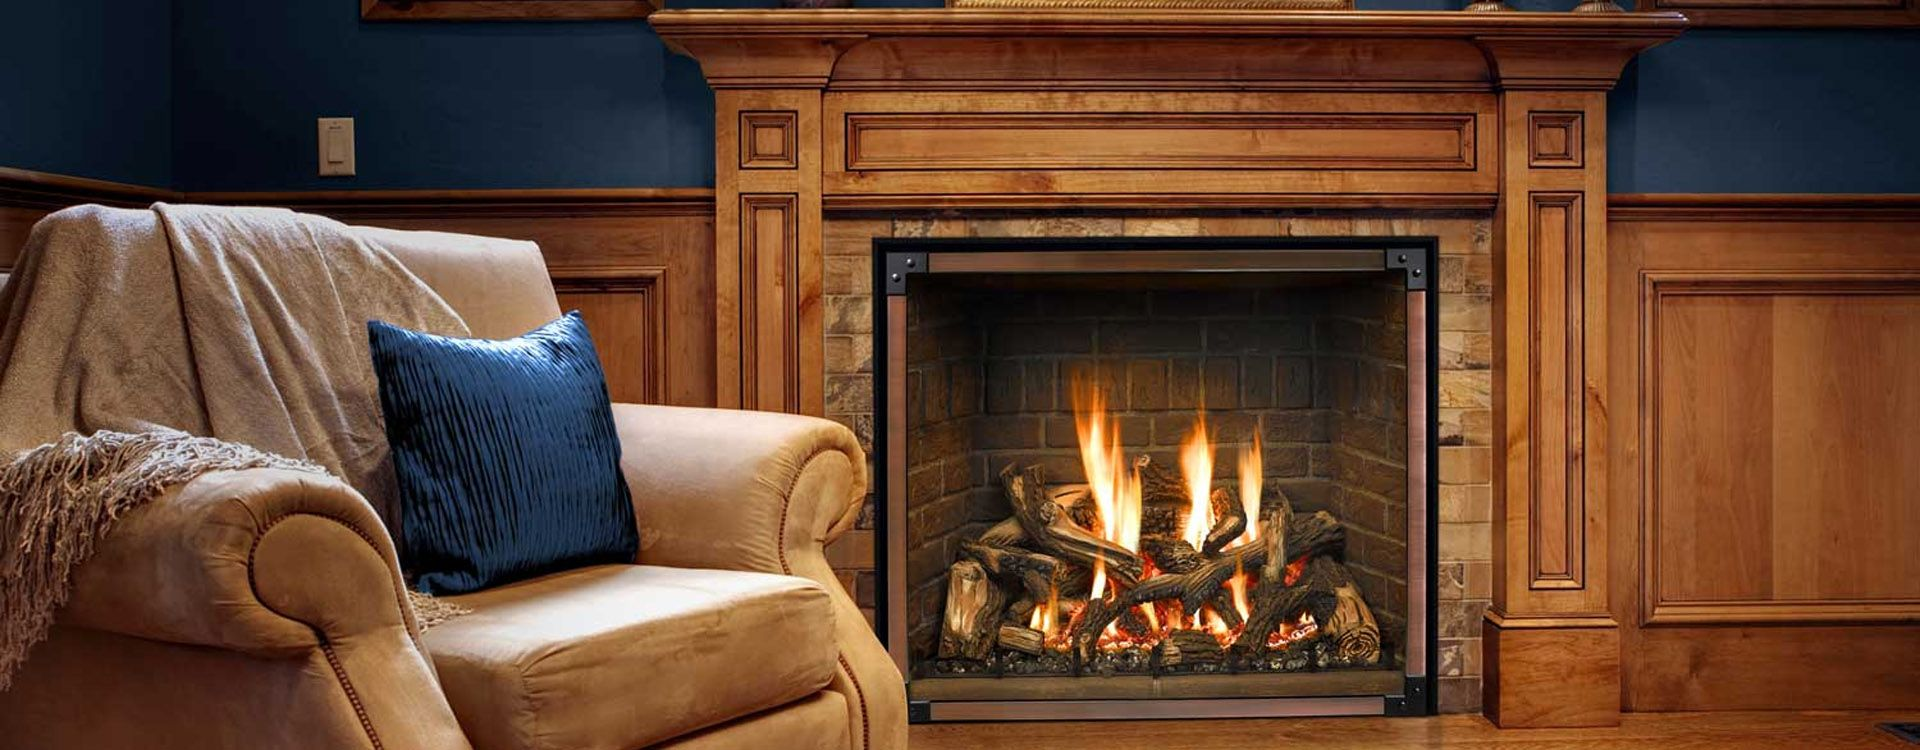 Indoor Location By A Fireplace On A Cozy Chair During Winter Is The Most Appealing Indoor Place To Me Gas Fireplace Ethanol Fireplace Fireplace